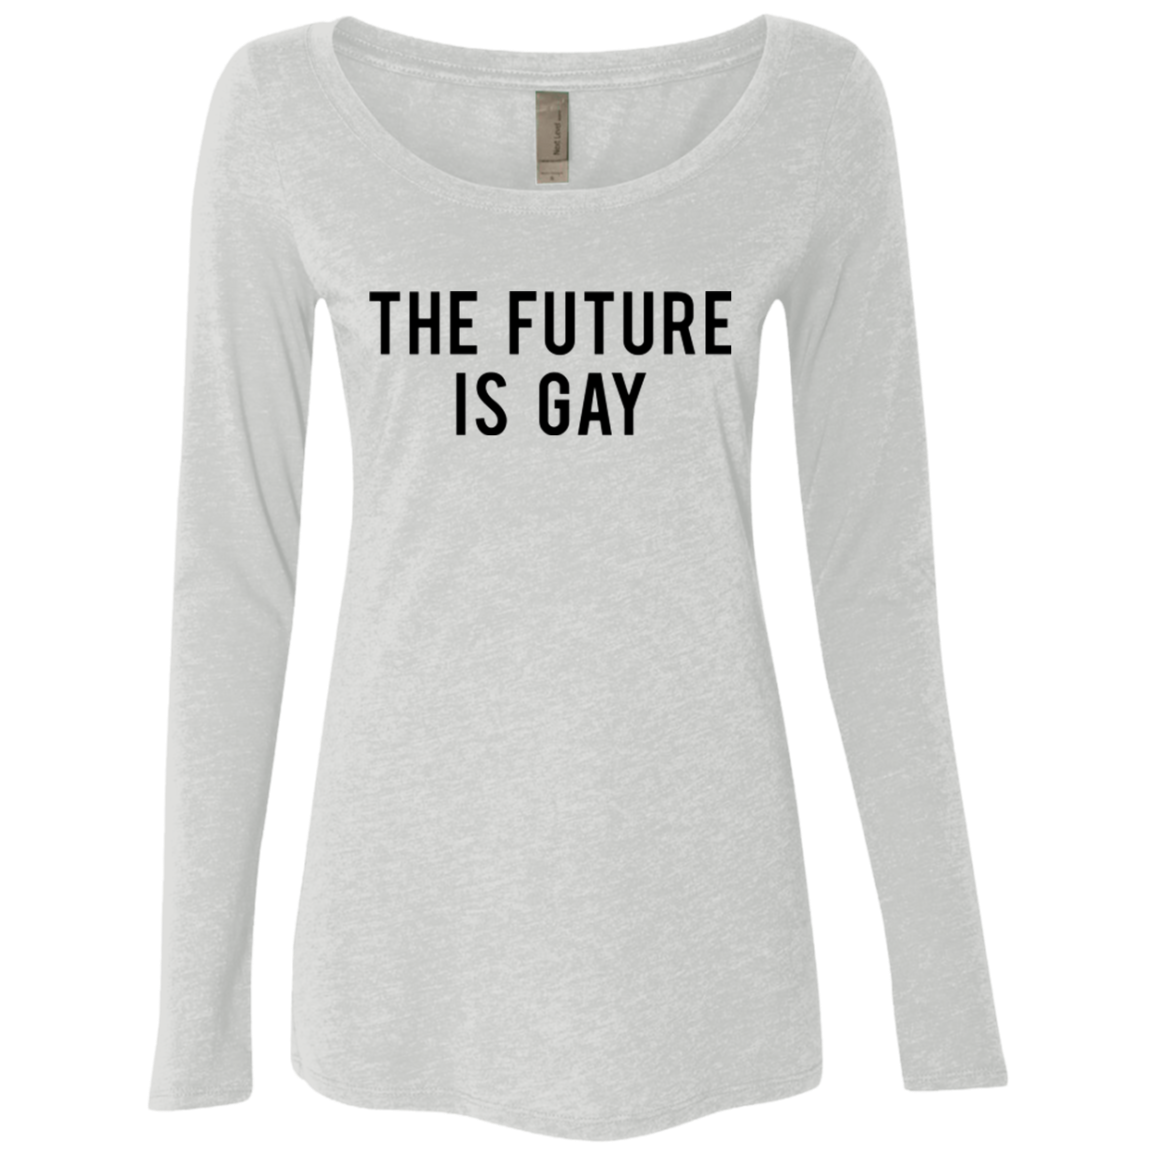 The Future is Gay Women's Long Sleeve Tee